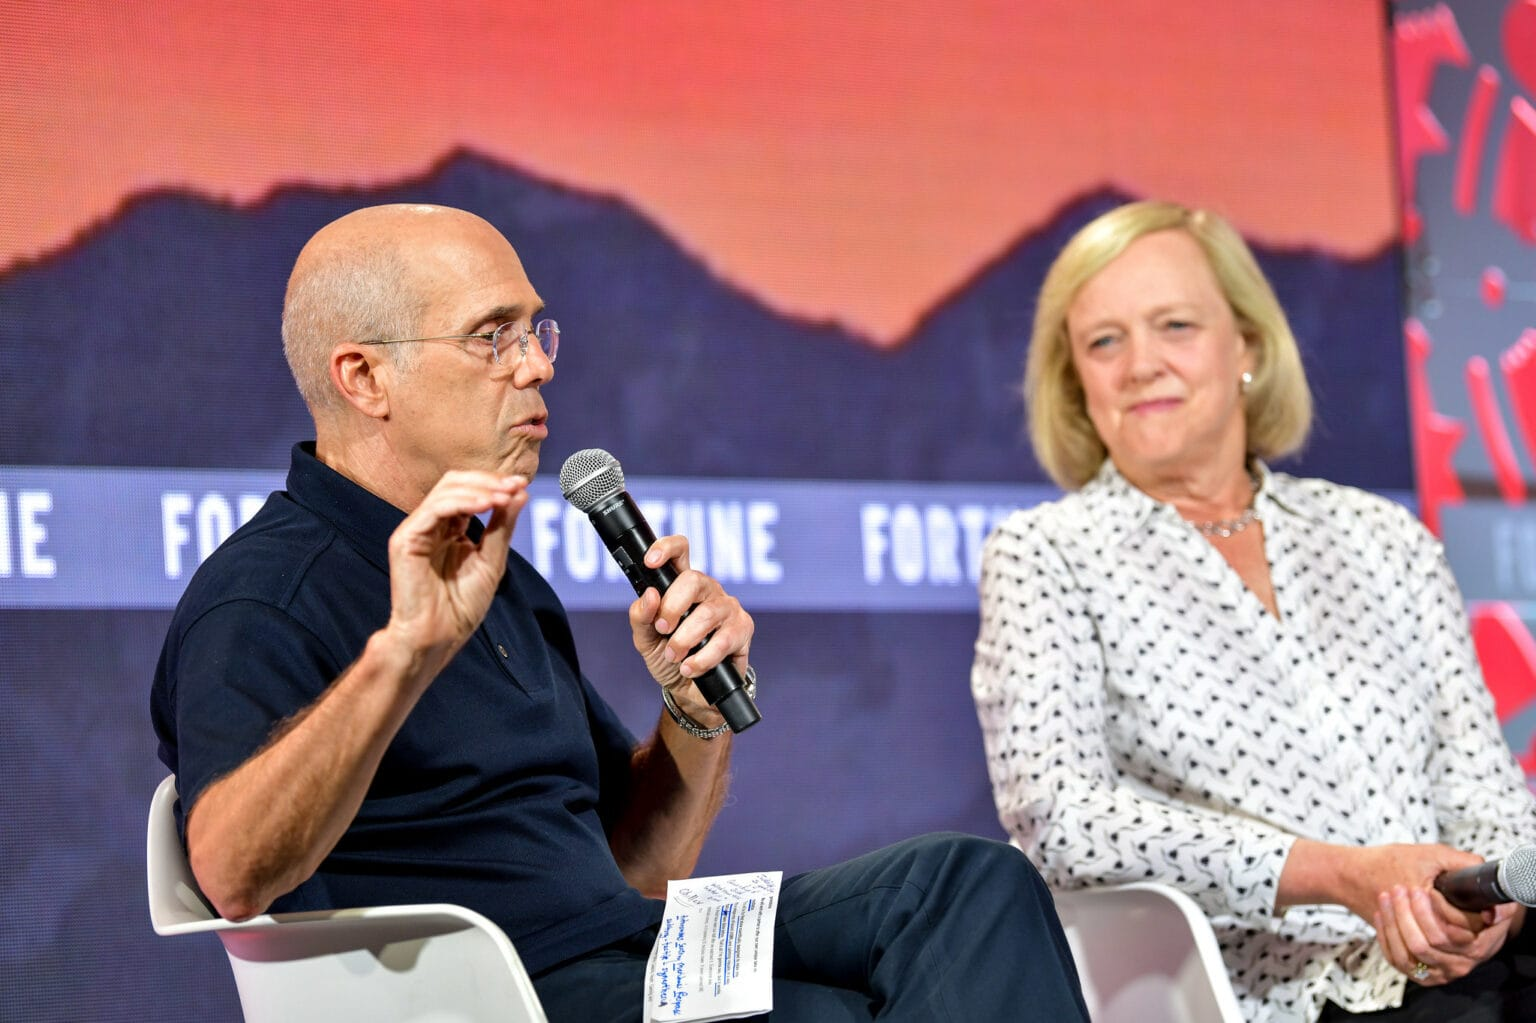 Power players Jeffrey Katzenberg and Meg Whitman apparently couldn't save Quibi.